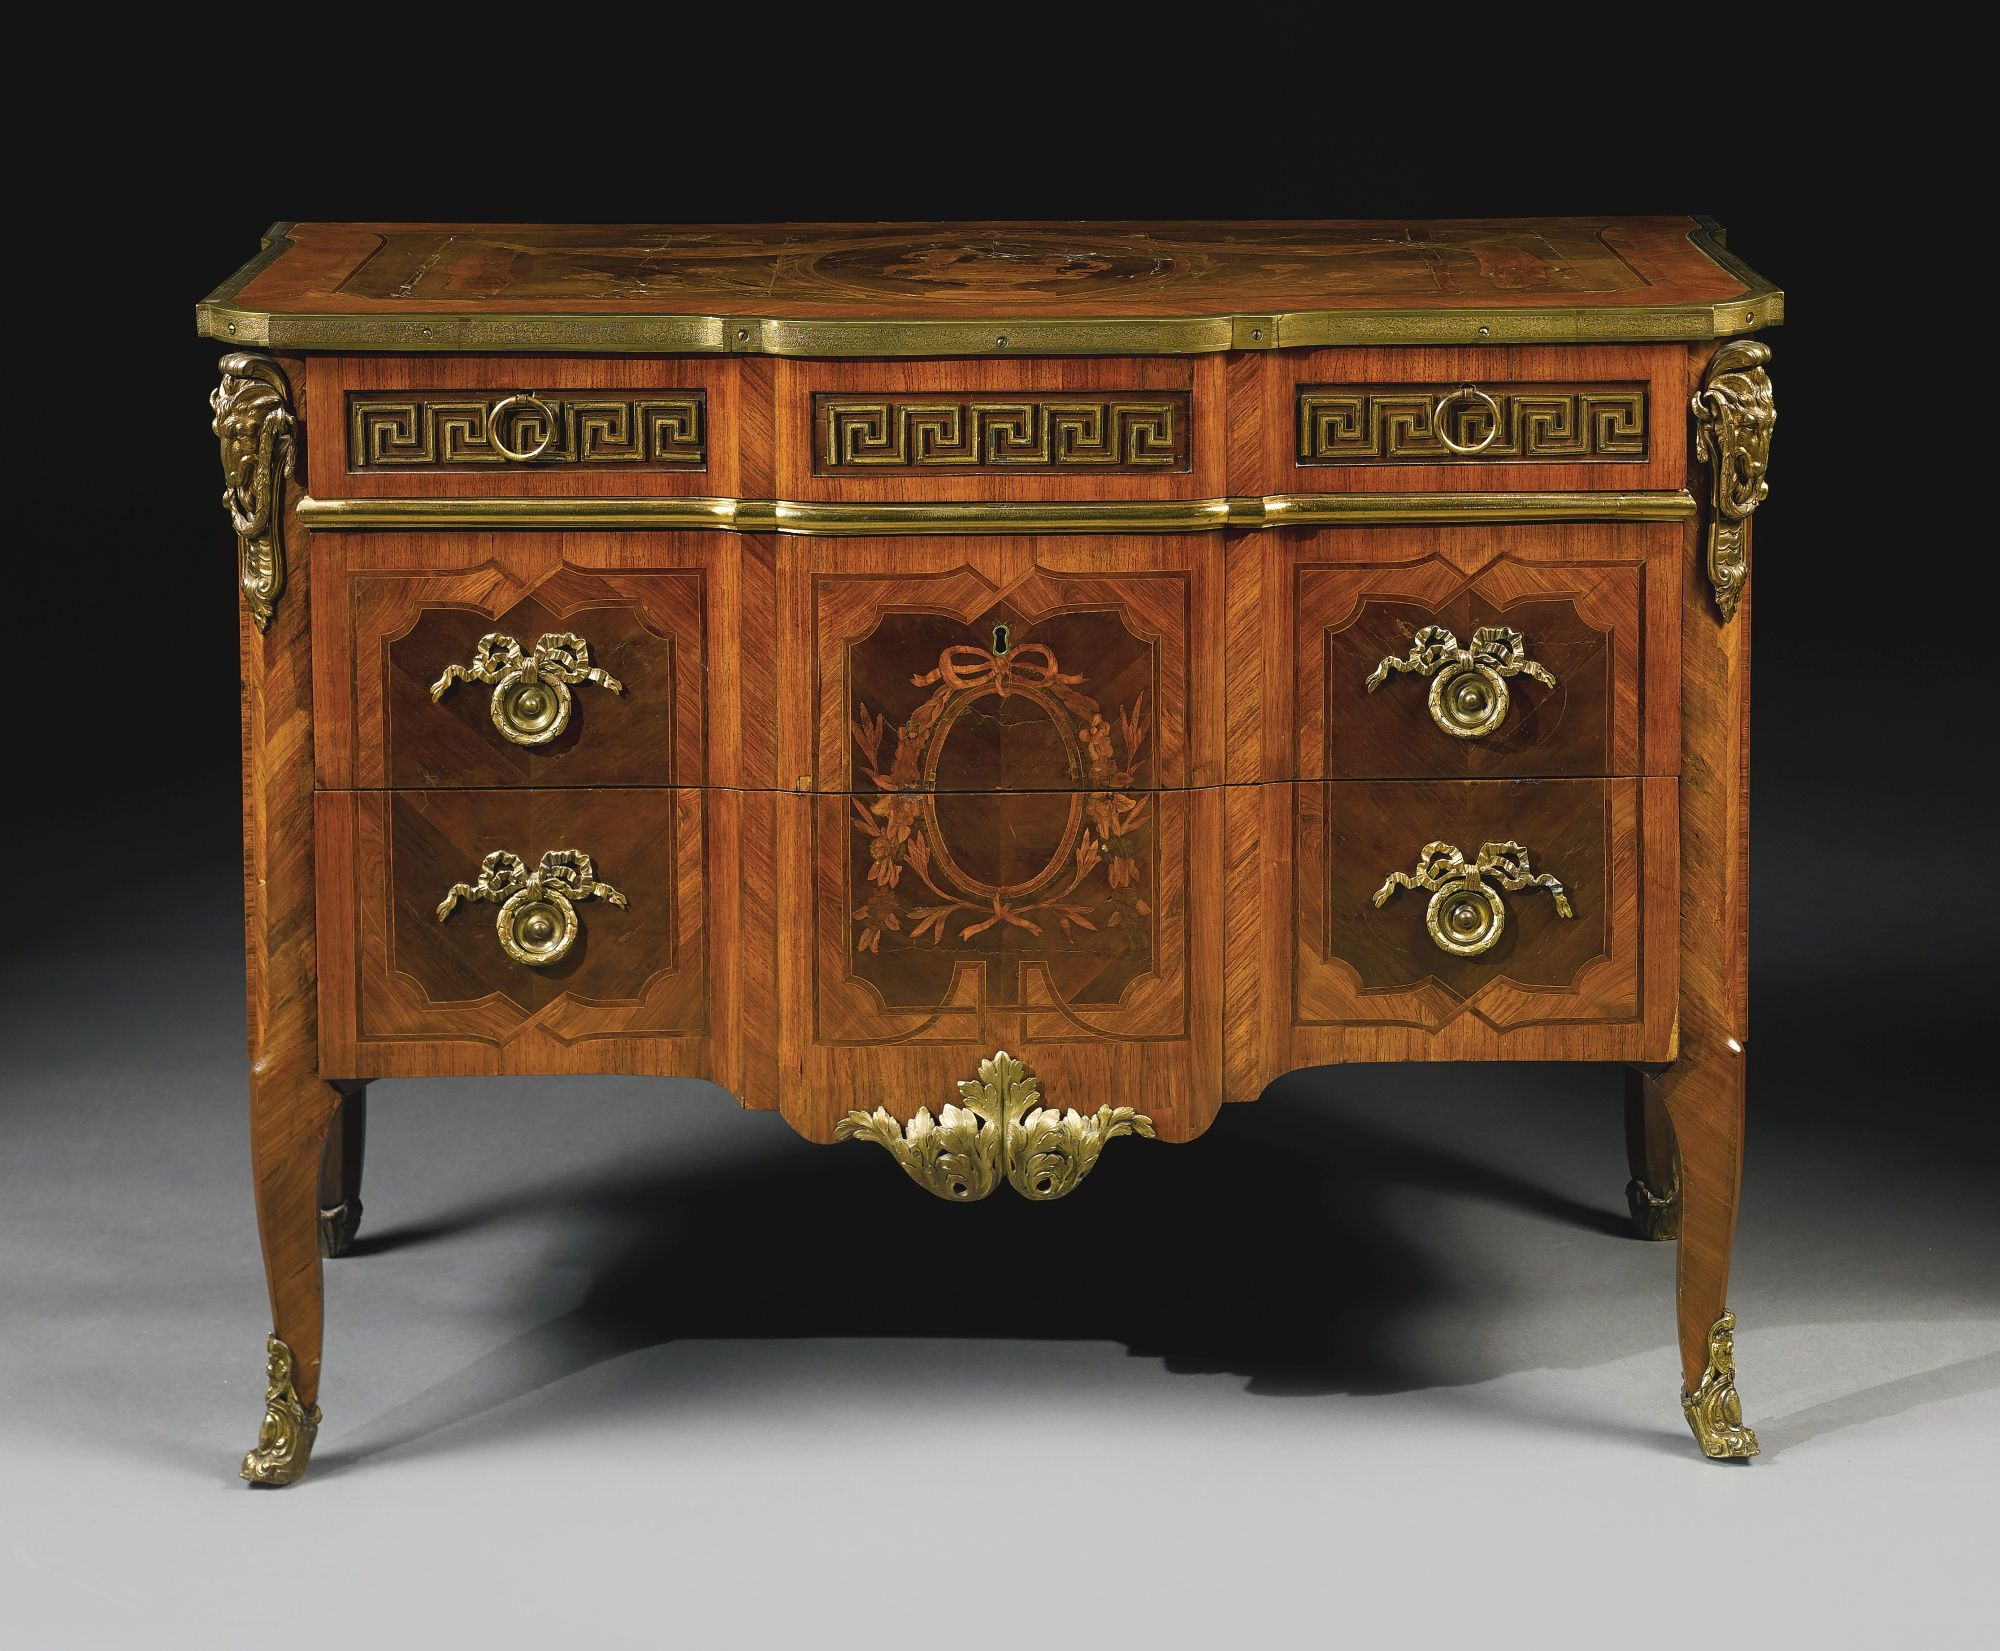 A Dutch early neoclassical ormolu-mounted tulipwood, mahogany and marquetry commode in the manner of Matthijs Horrix - circa 1770.